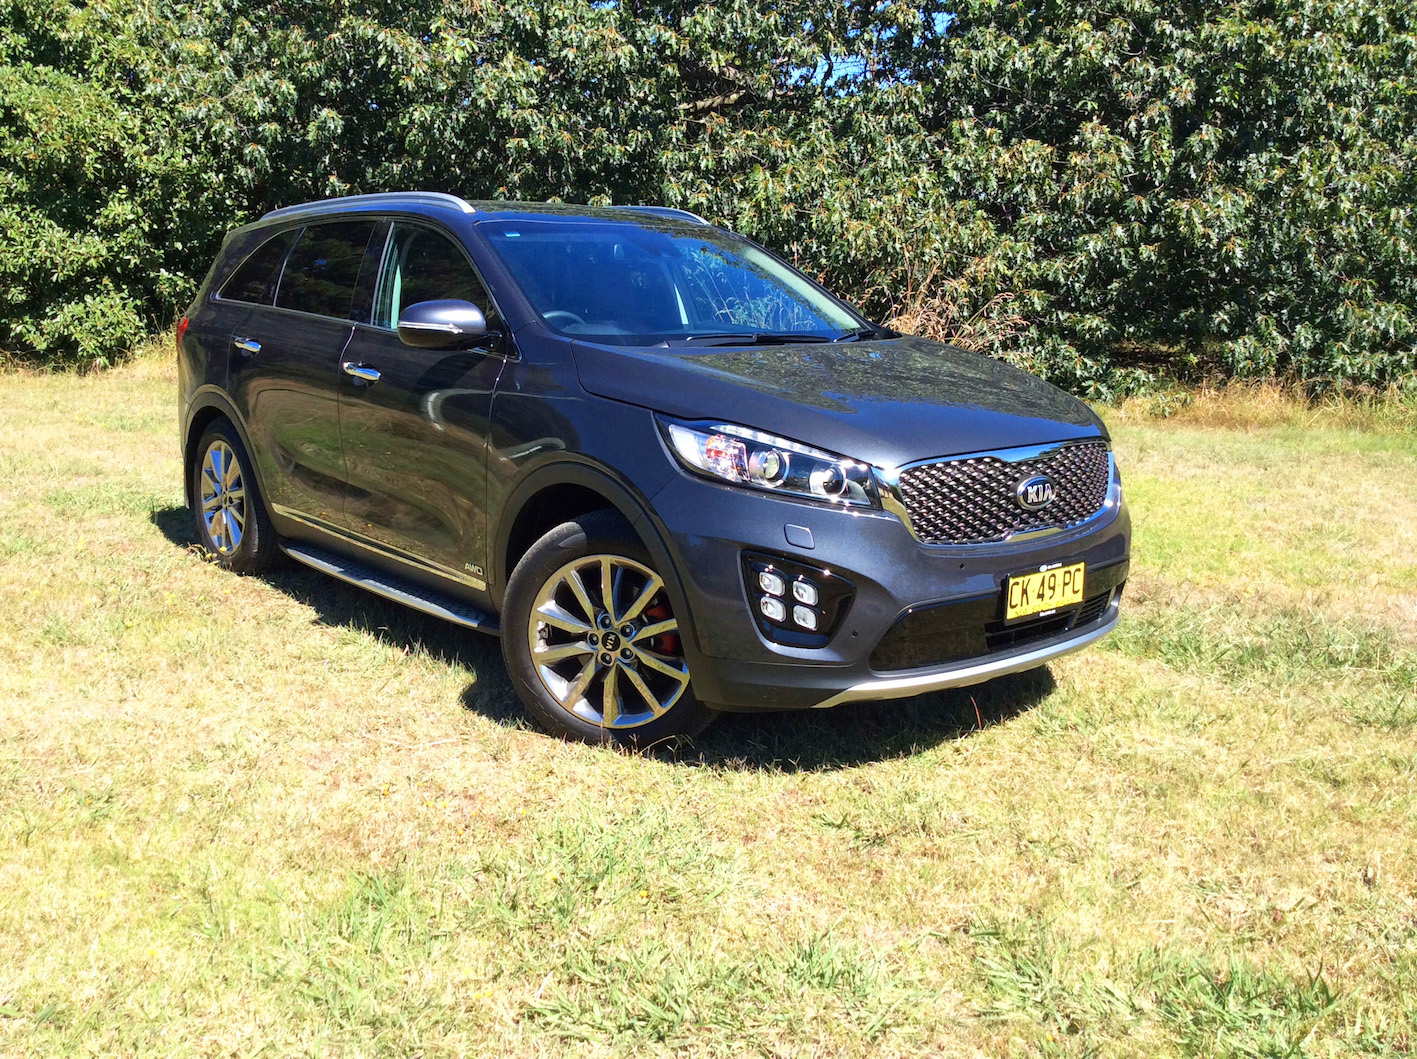 2017 Kia Sorento GT Line REVIEW | A New Range-Topping Model For Kia's Competent Large Seven-Seat SUV